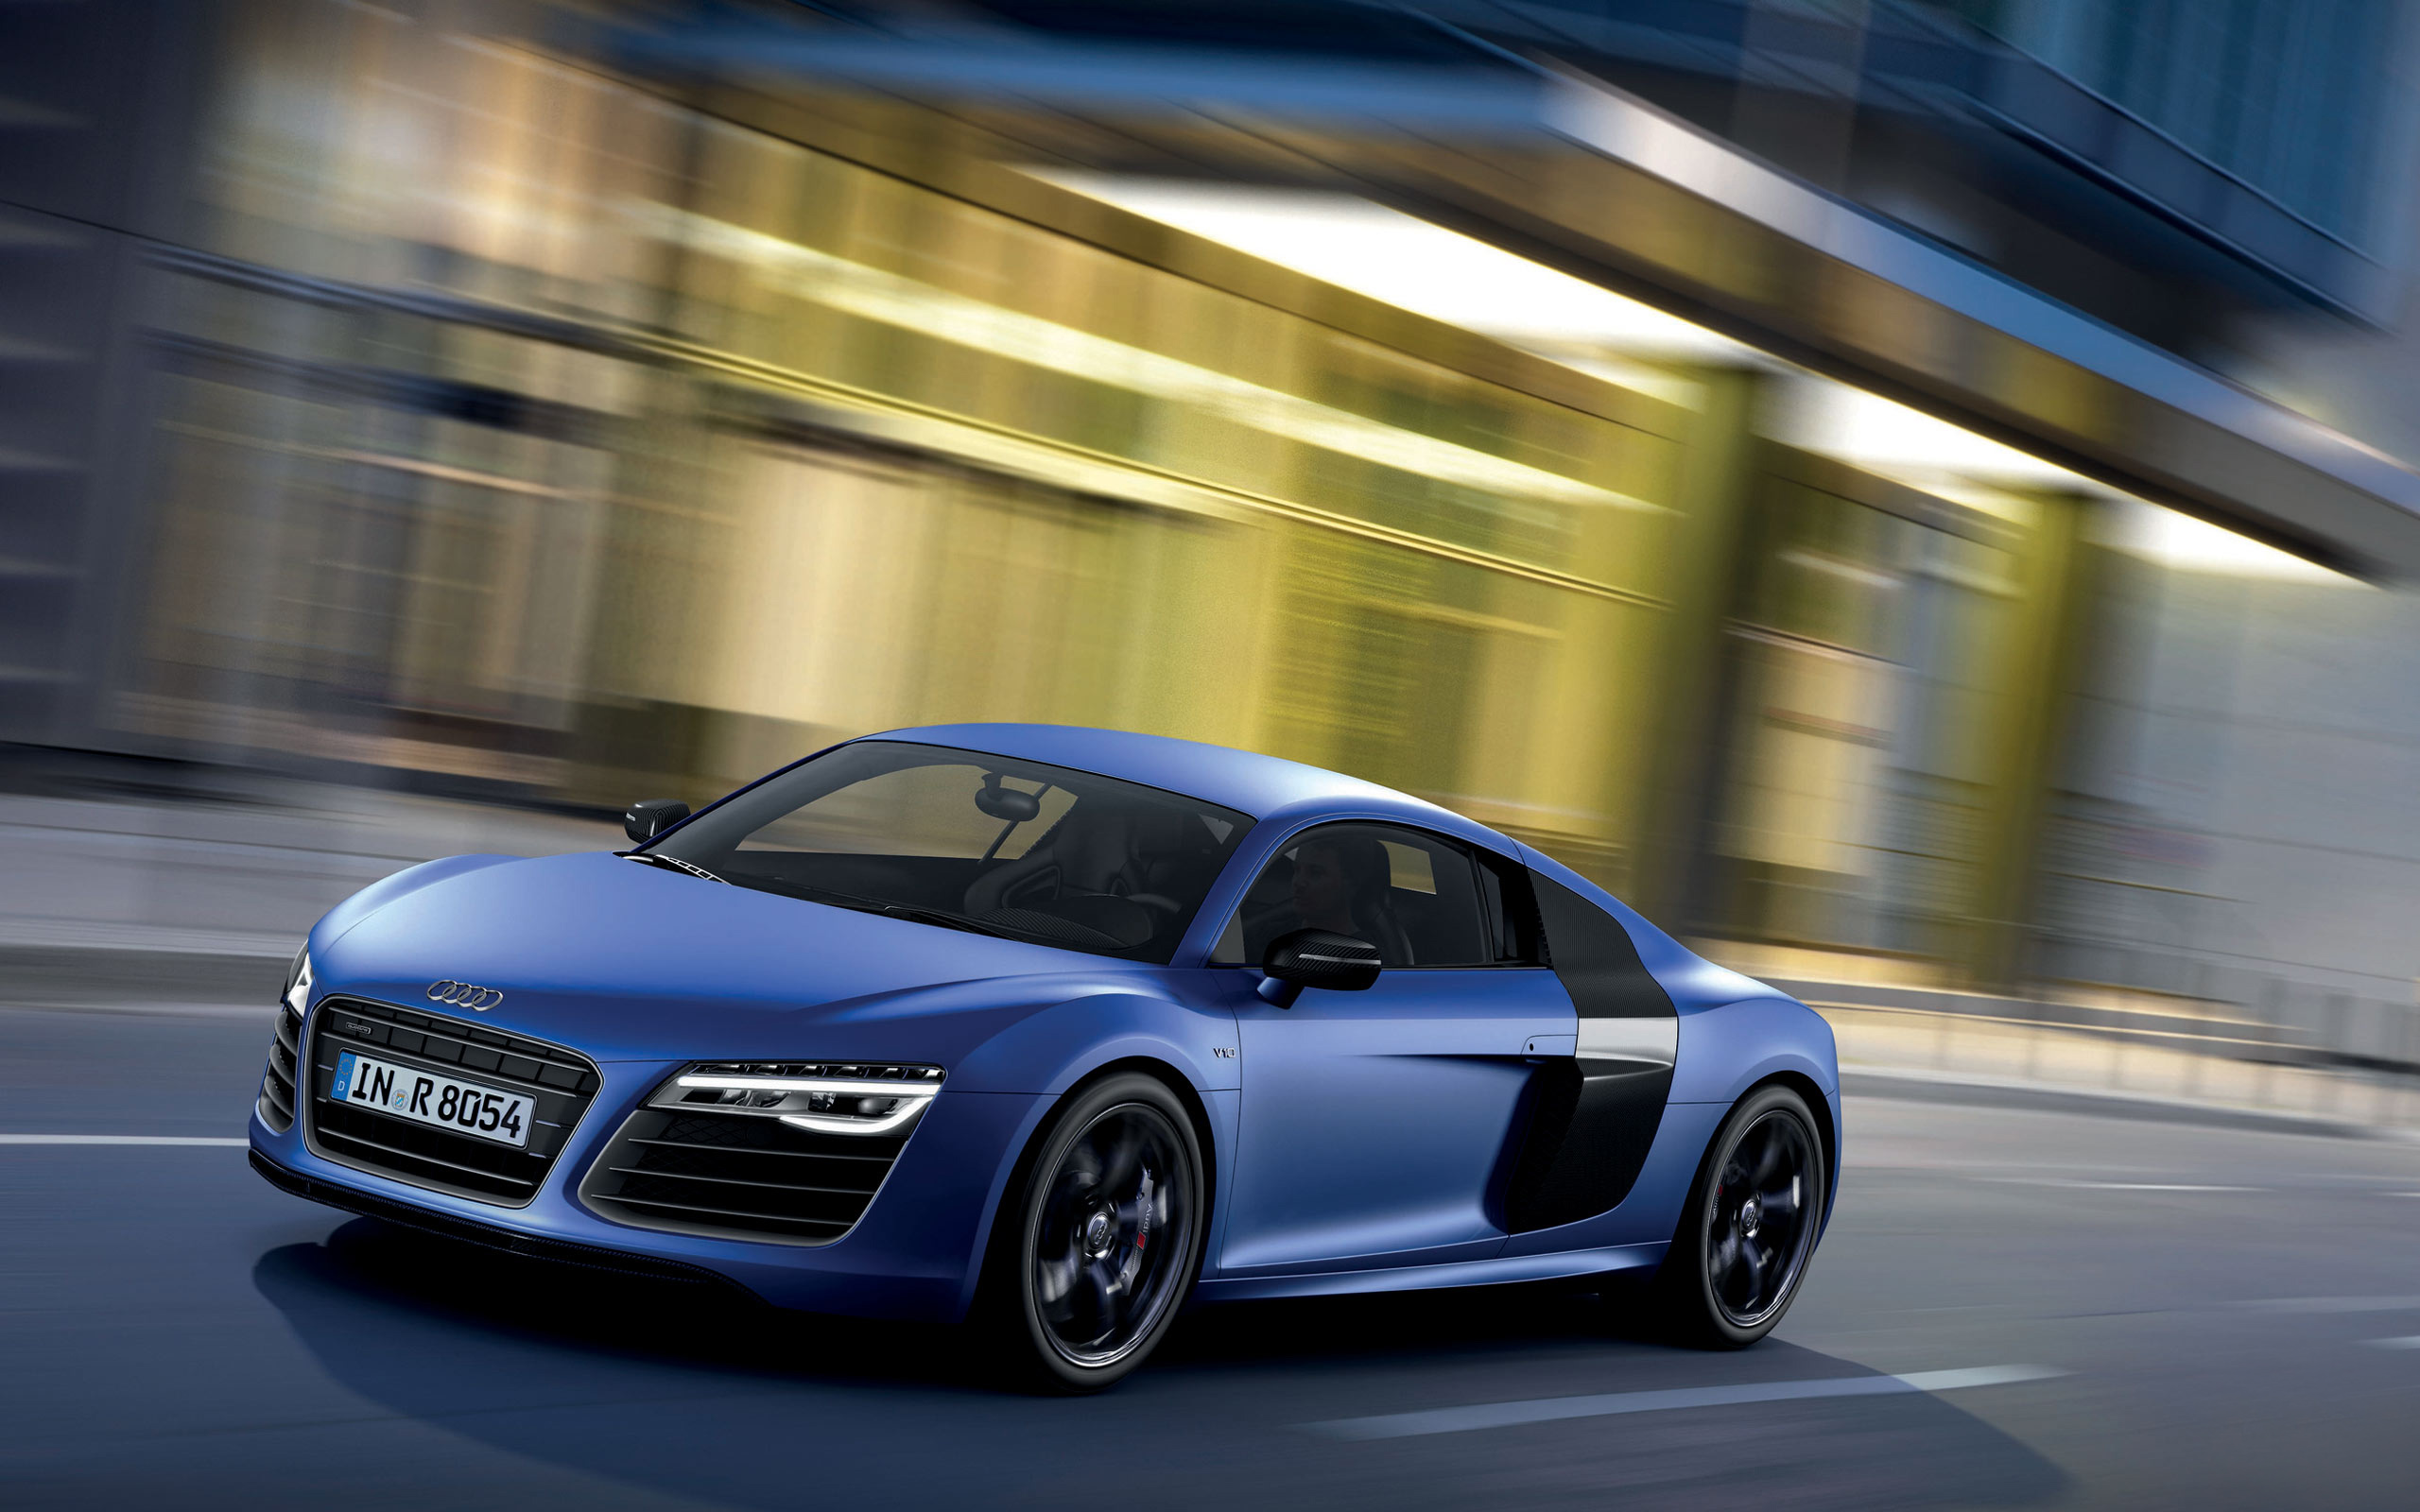 Audi R8 V10 Plus 2013 Wallpaper HD Car Wallpapers 2560x1600